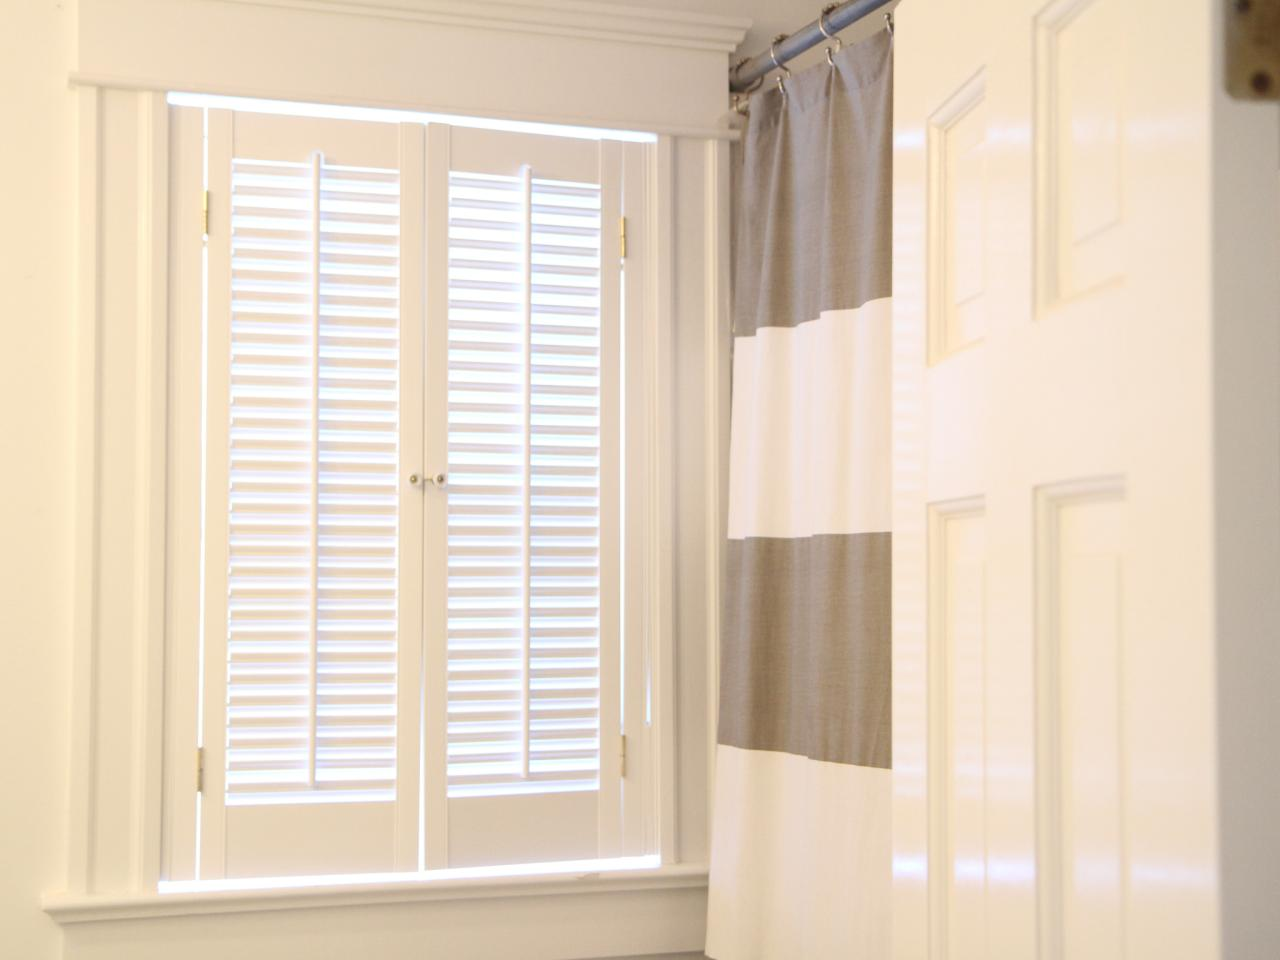 Interior Plantation Shutters Home Depot interior plantation shutters home depot interior plantation shutters home depot photo of nifty country style How To Install Interior Plantation Shutters